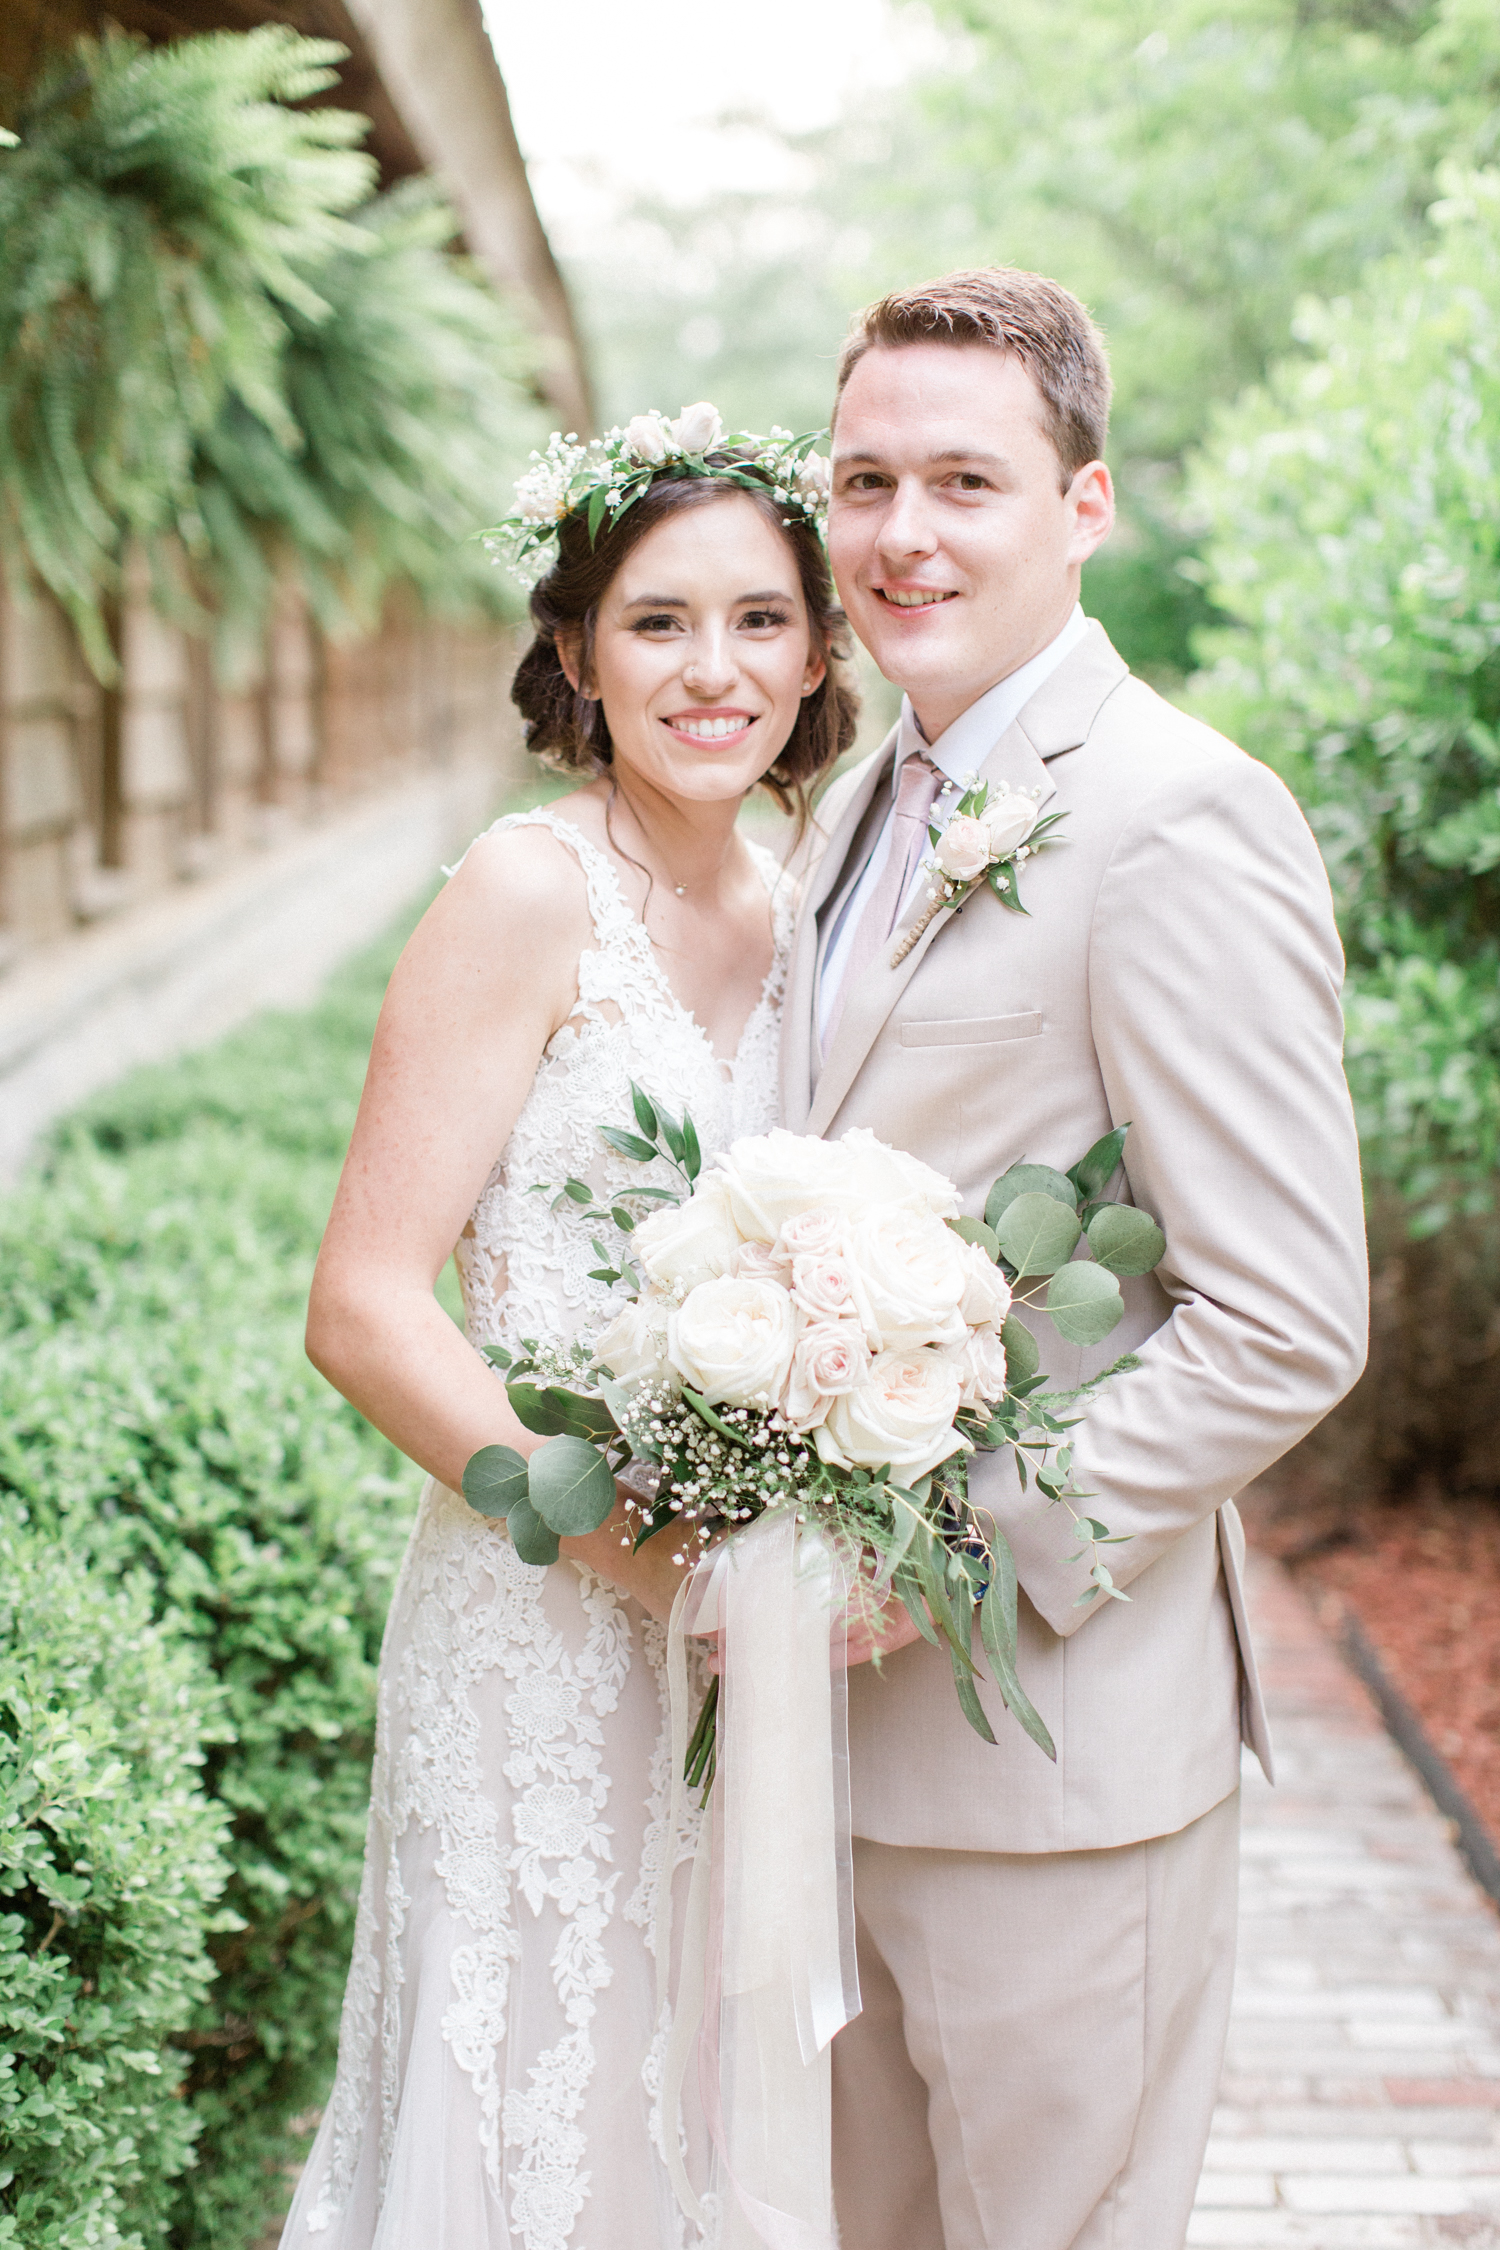 San Antonio Texas Wedding Engagement Photographer Photography Hill Country Texas Old Town Red Bud Hall Summer Blush Ivory Tan Rustic Classic Elegant Wedding San Antonio Austin Texas photographer 53